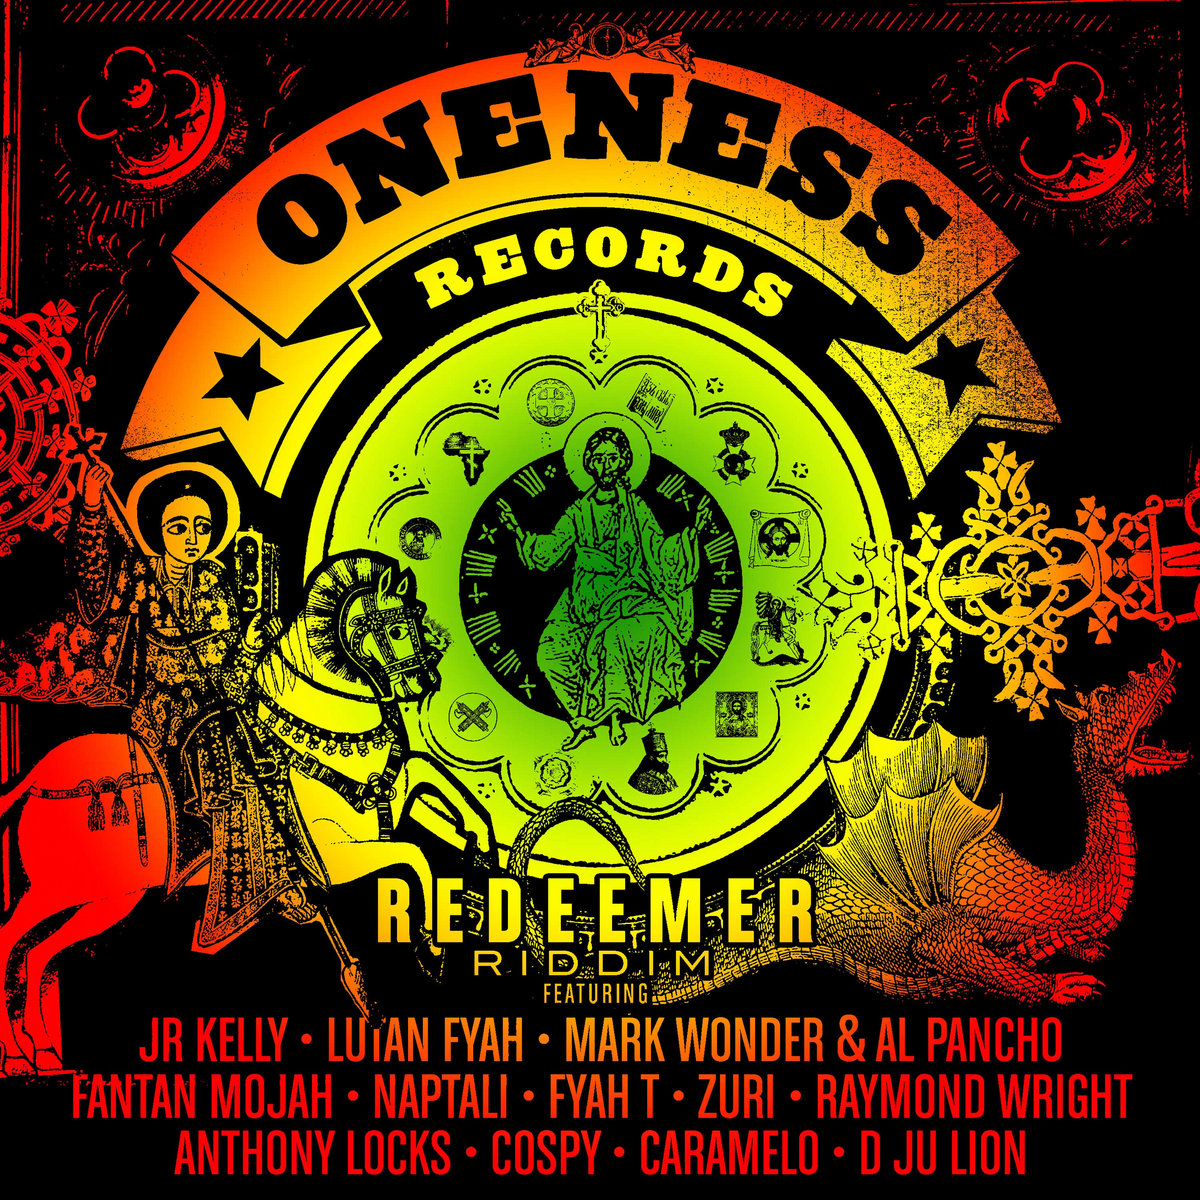 Redeemer Riddim Selection (Oneness Records Presents